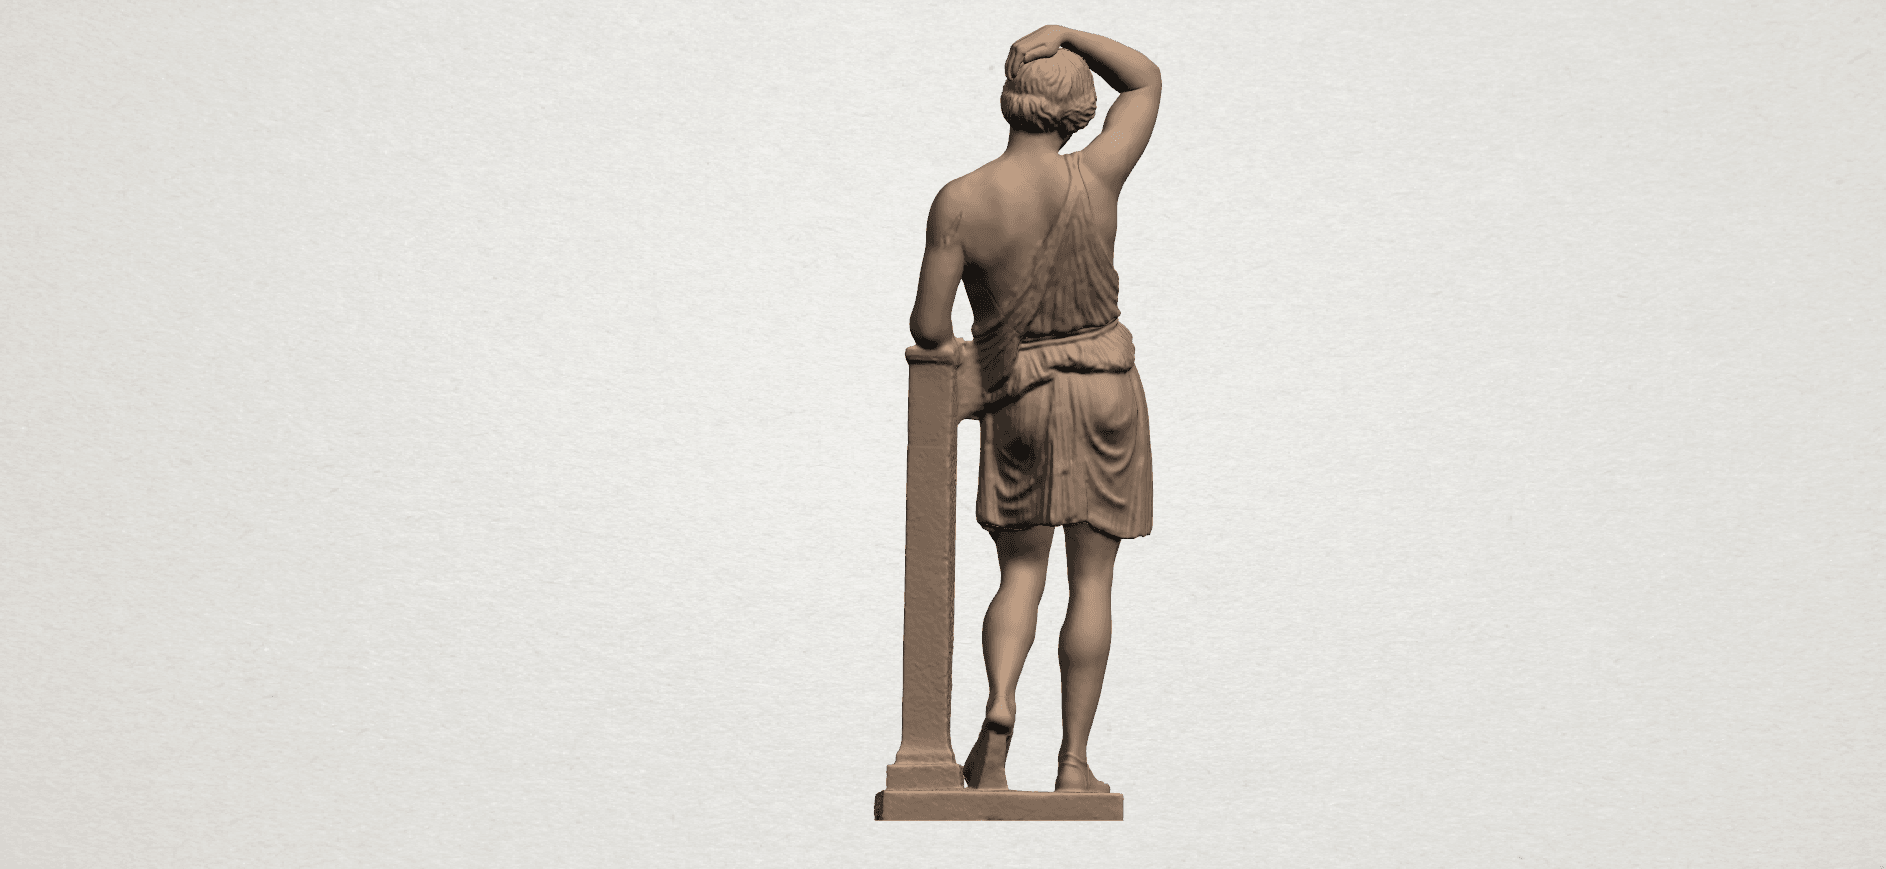 Naked Girl (x) A05.png Download free STL file Naked Girl 10 • 3D printing model, GeorgesNikkei